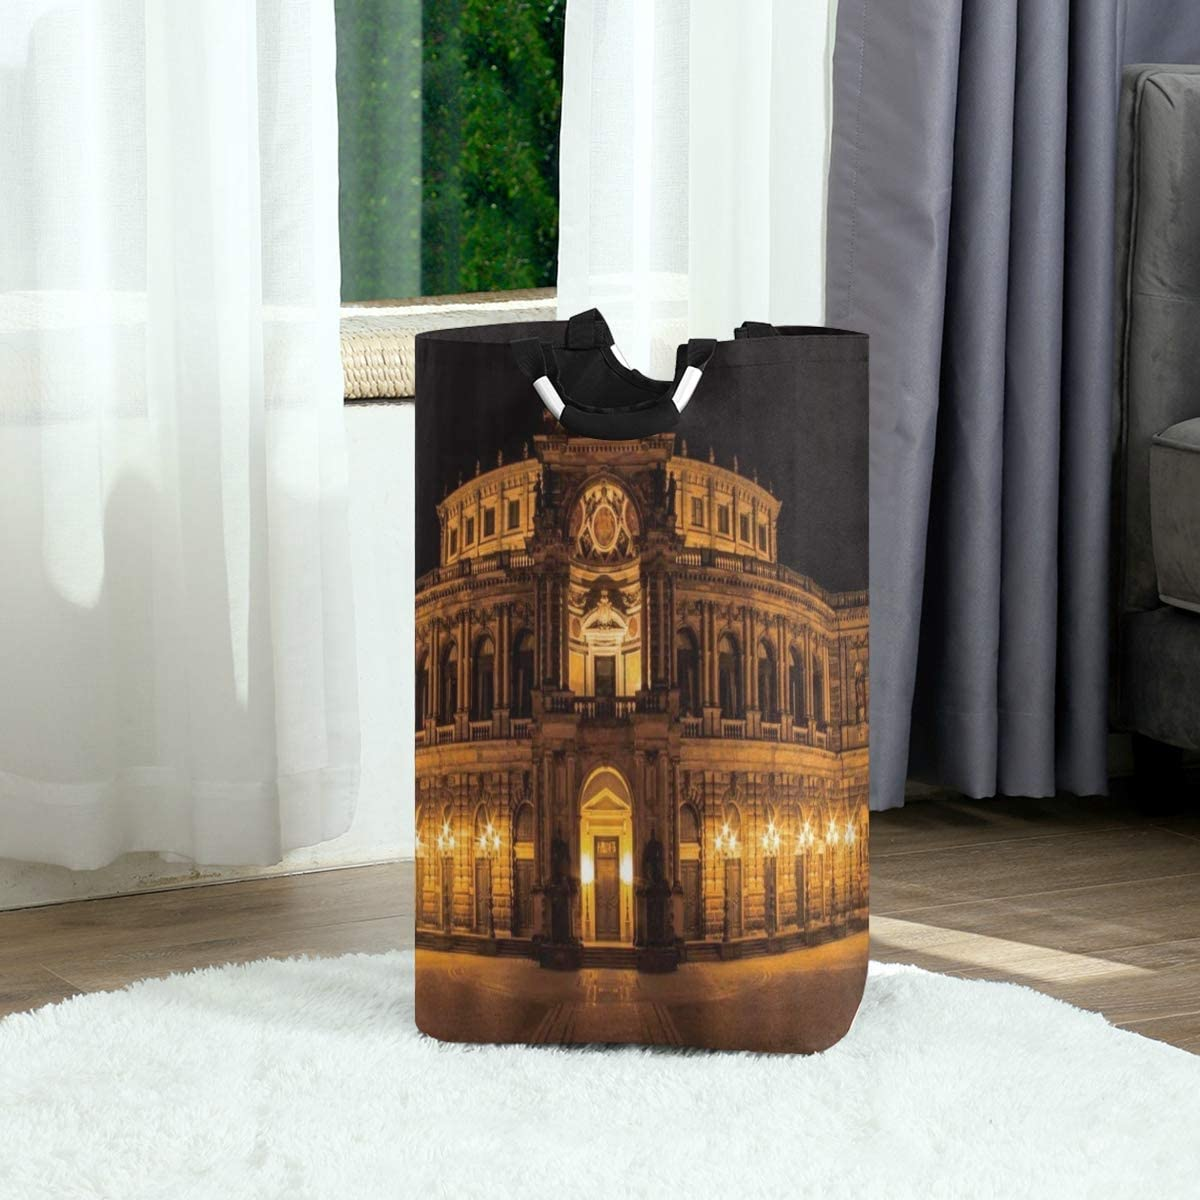 DAOPUDA Laundry Bag Opera House Baroque Architecture Germany Dresden Arcades Pilasters Terrace Dim Lights Large Laundry Hamper Bags for Heavy-Duty Use with Strap,Clothes Basket for Dorm Bathroom